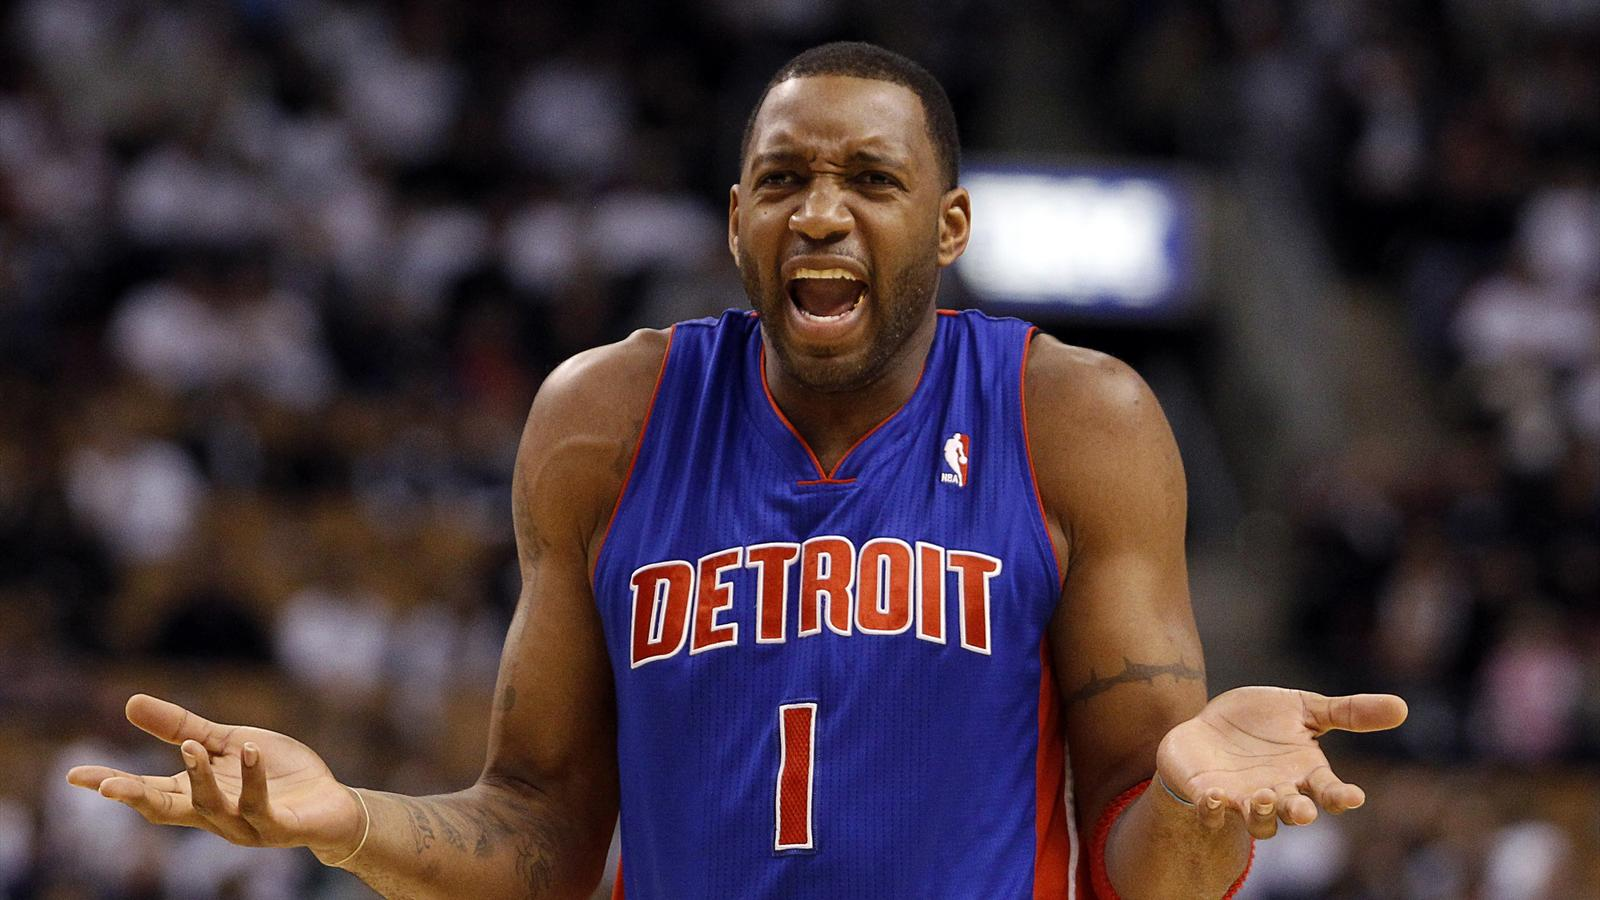 4bbc4407cc1 Tracy McGrady announces retirement from NBA - Basketball - Eurosport  Australia